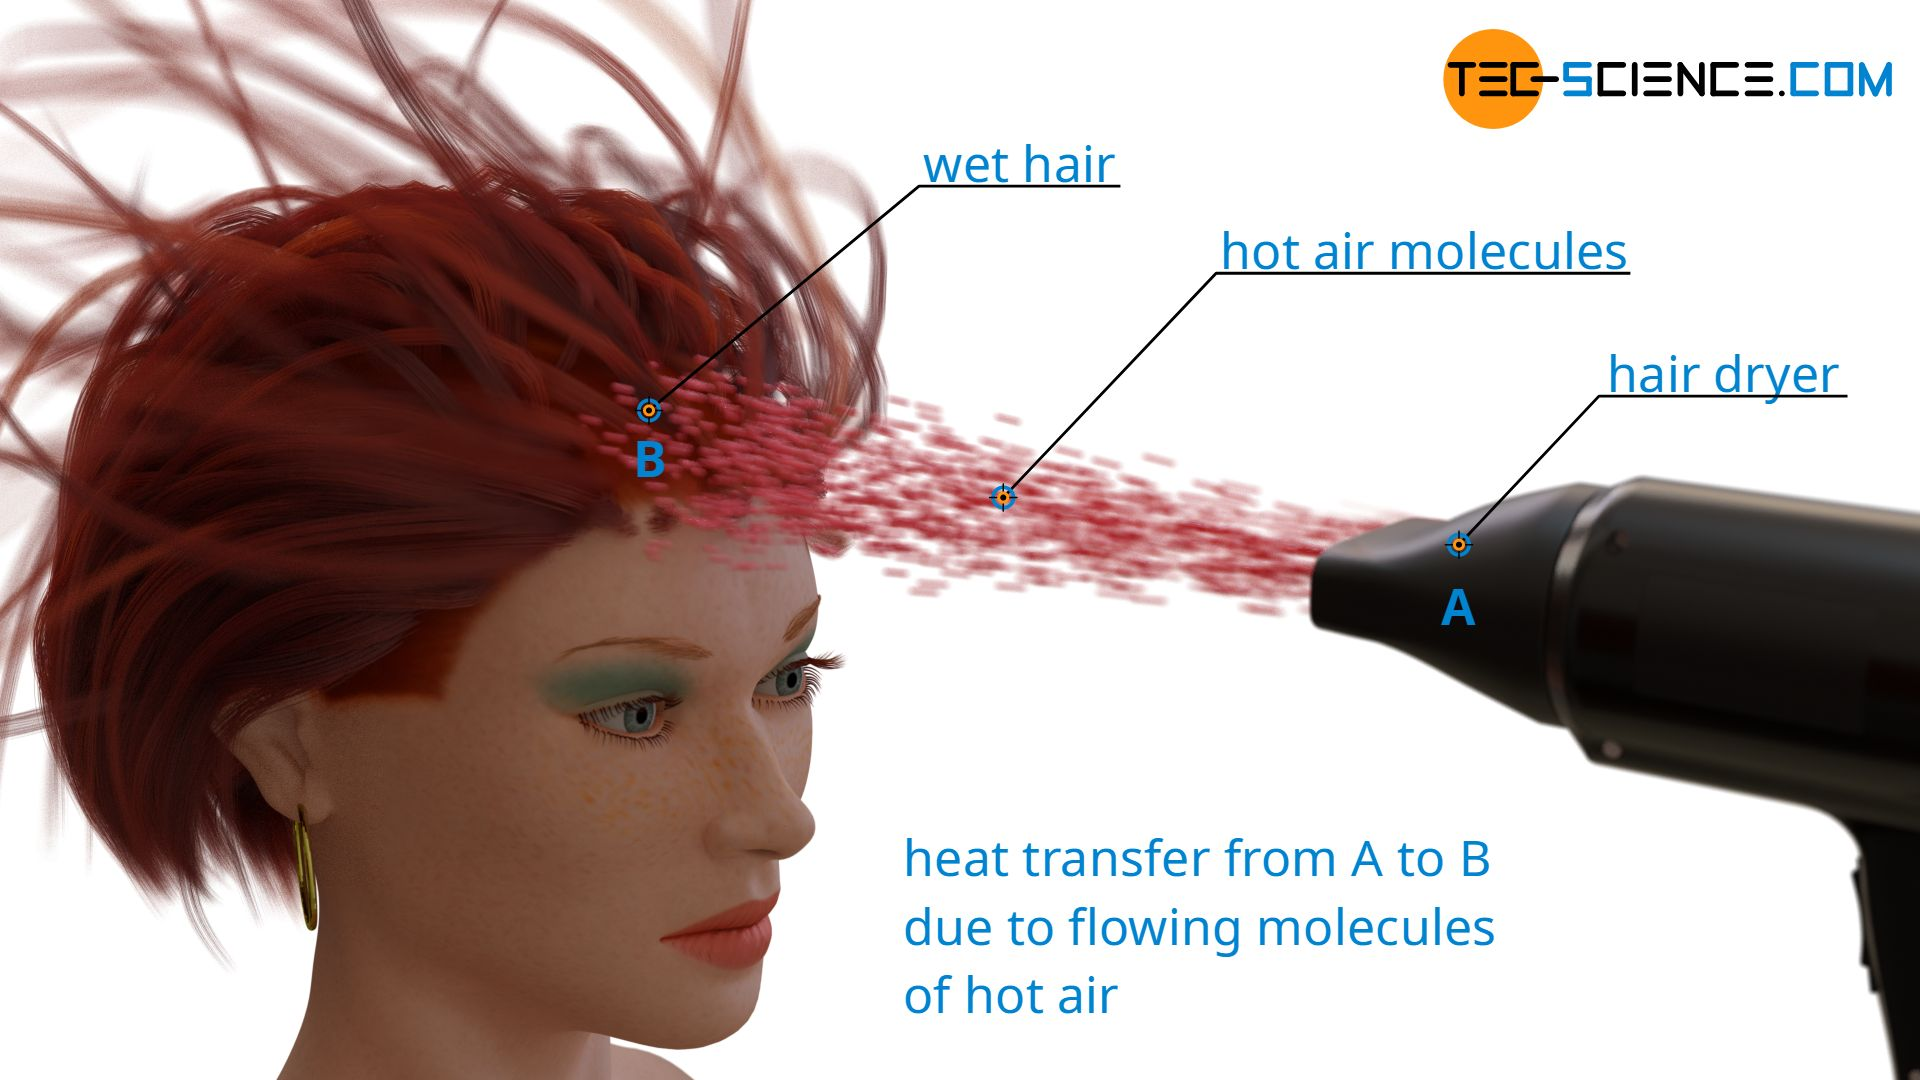 Heat transfer using the example of a hair dryer